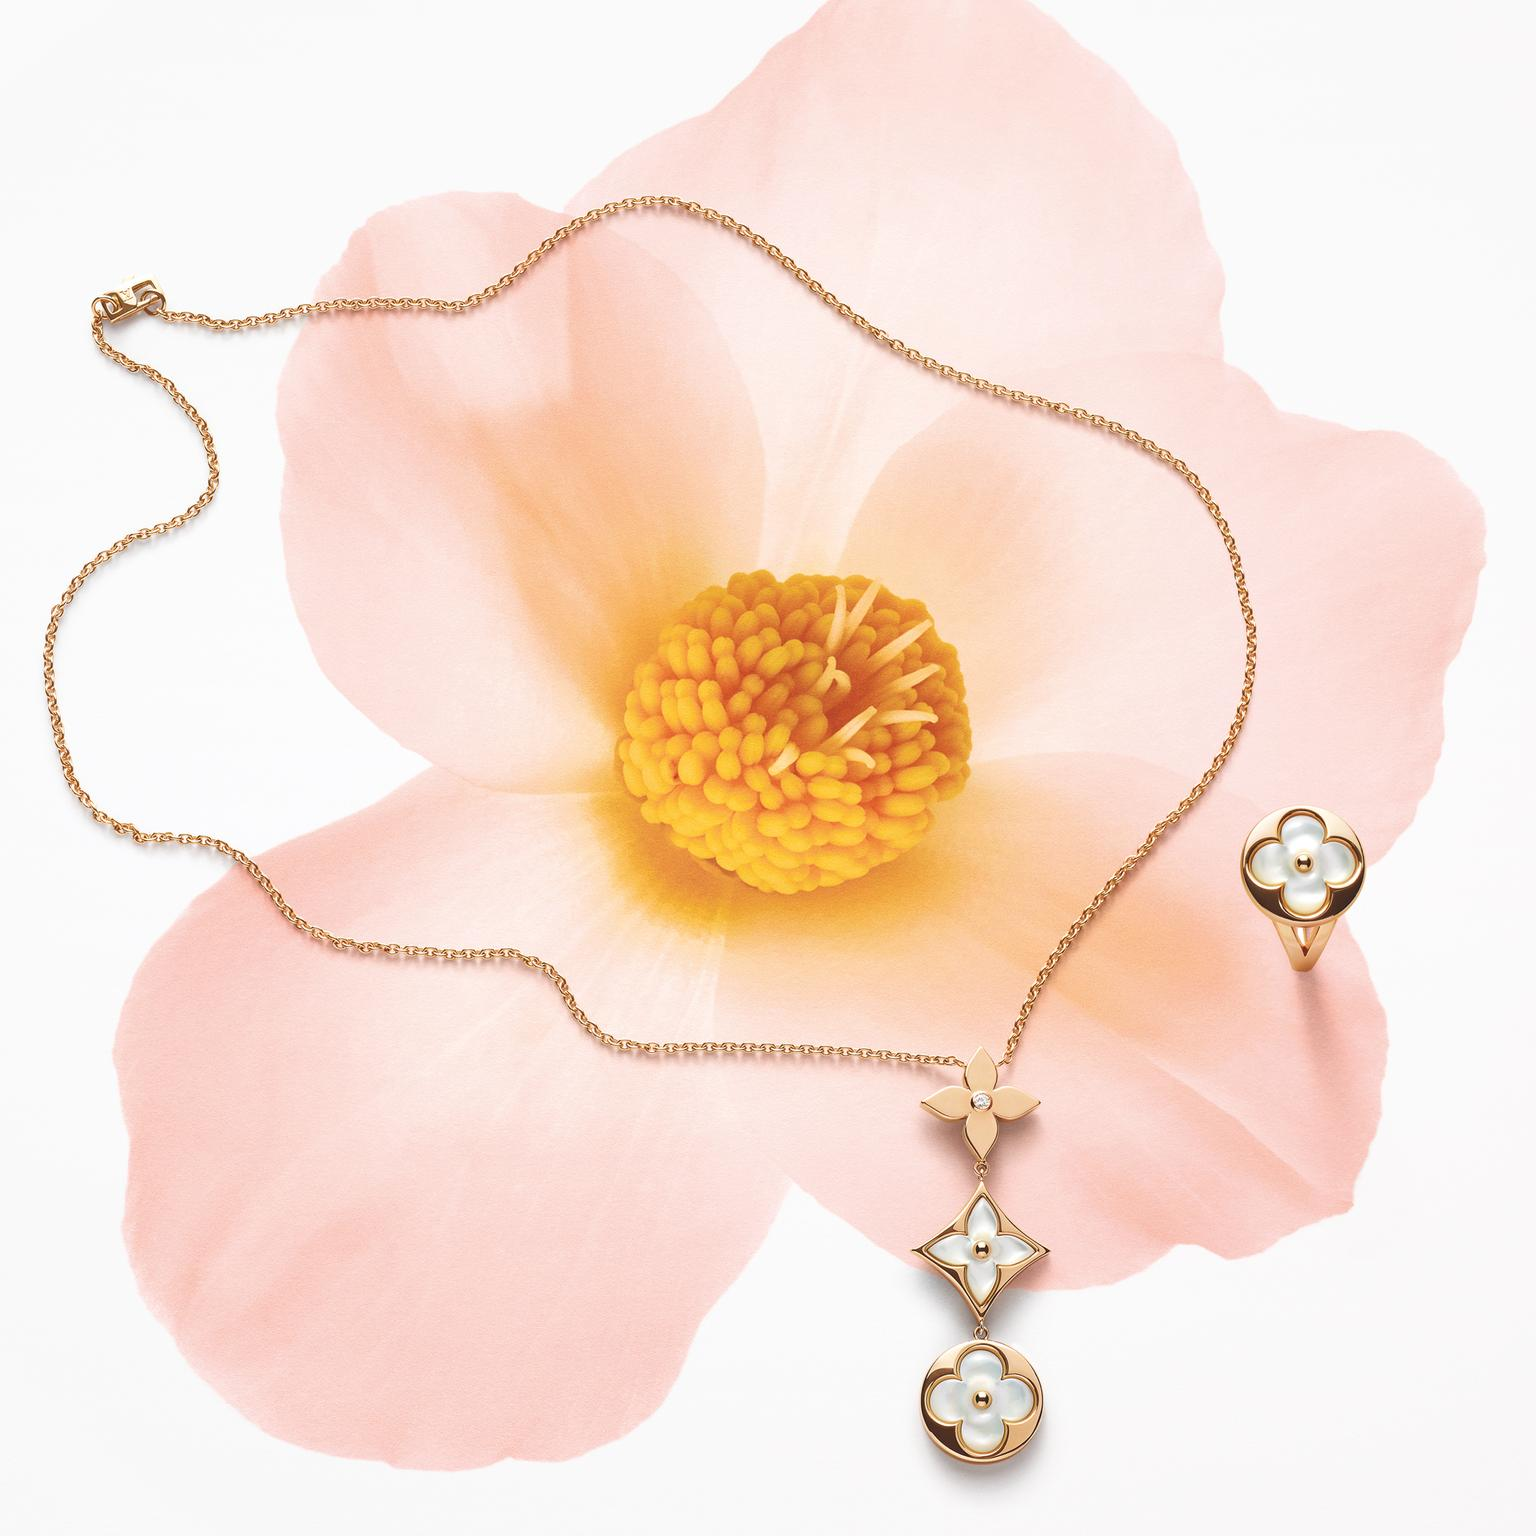 Louis Vuitton Blossom collection necklace and ring